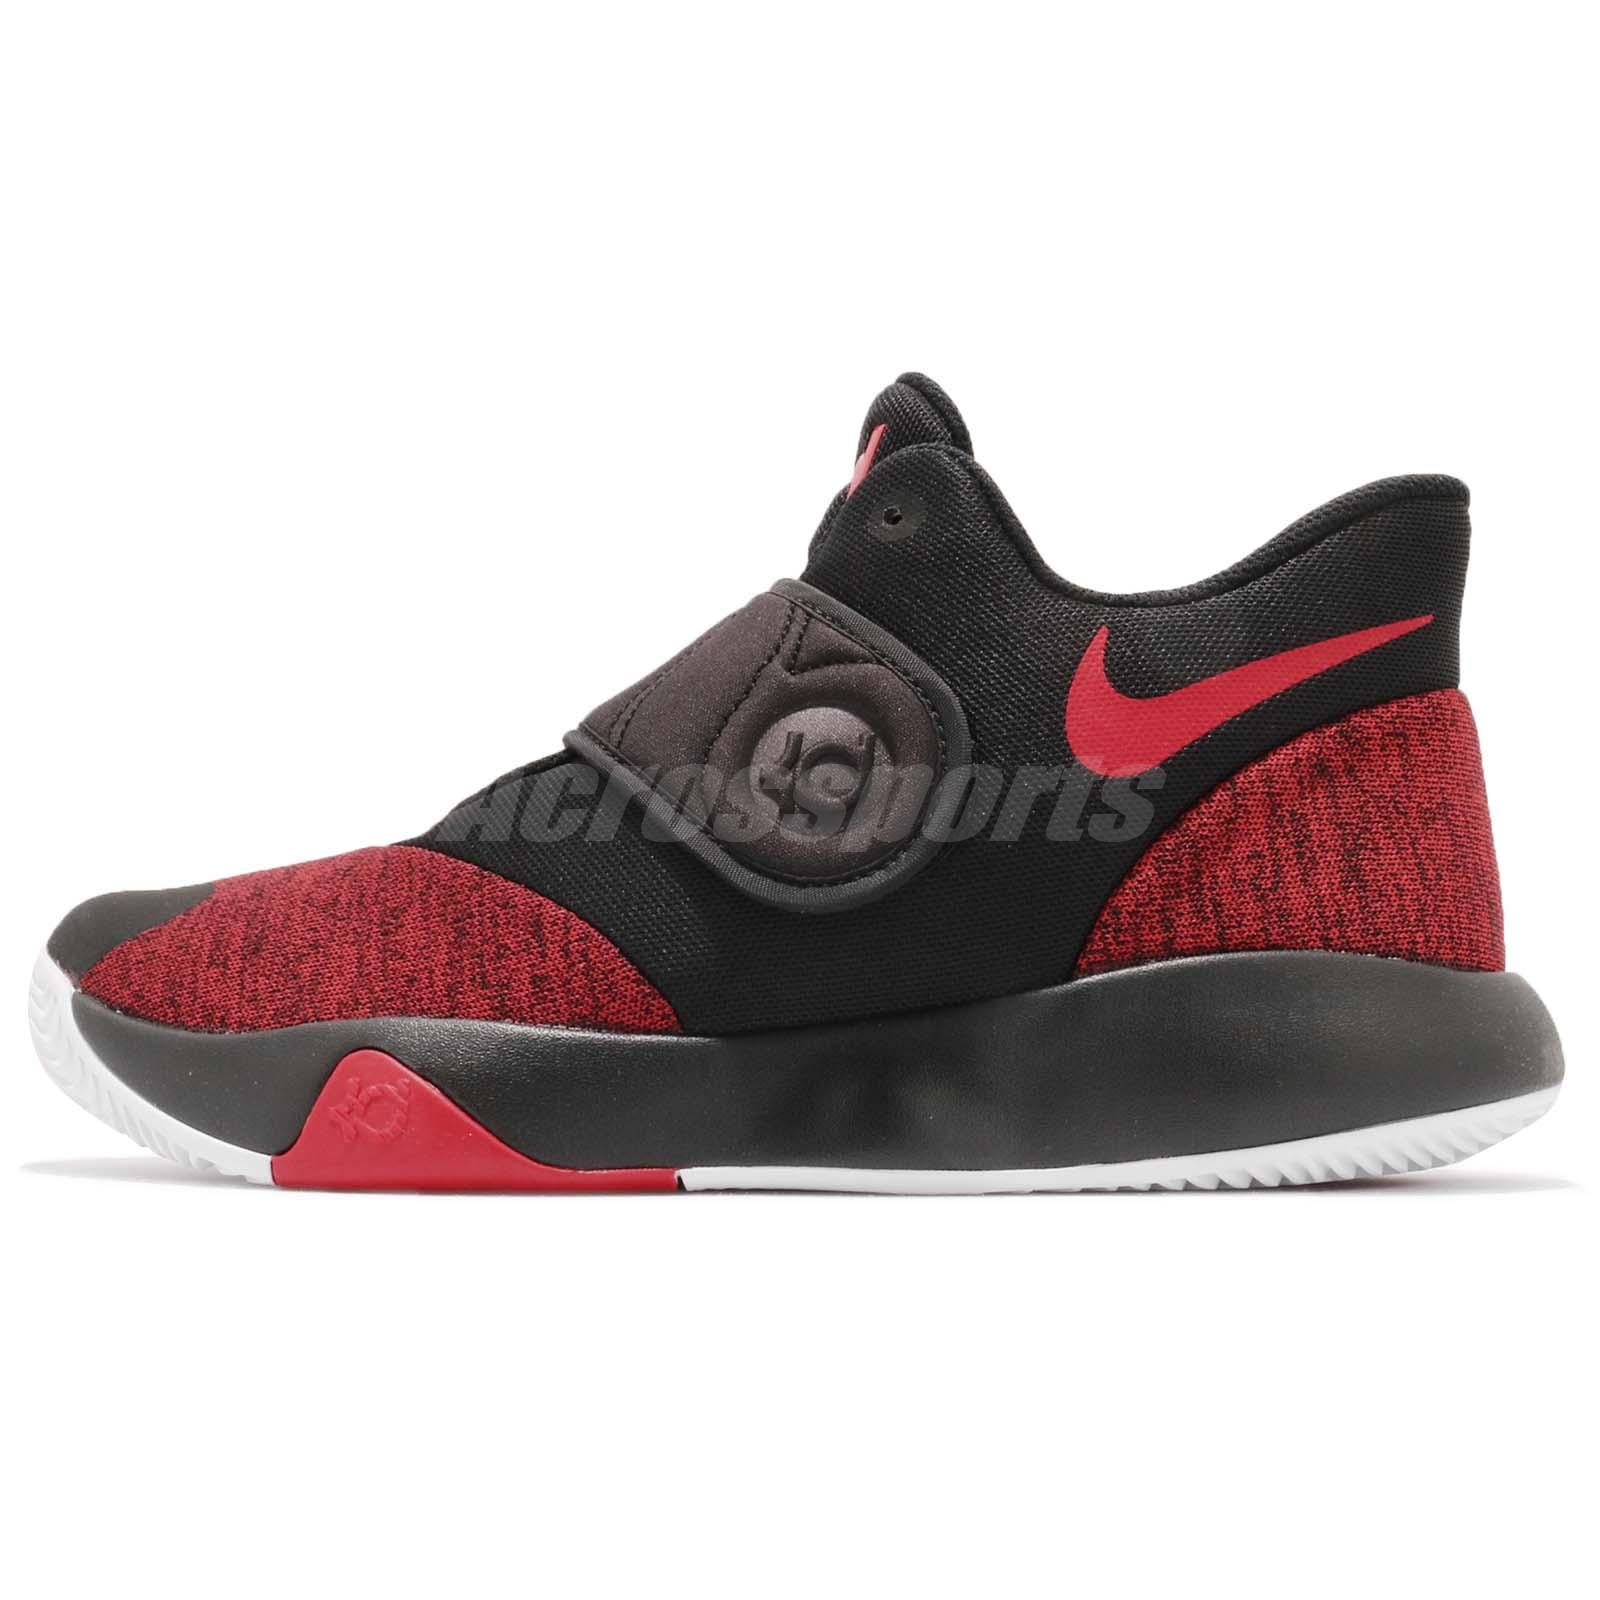 f4fdb1656a49 Nike KD Trey 5 VI EP 6 Kevin Durant Black Red Men Basketball Shoes  AA7070-006